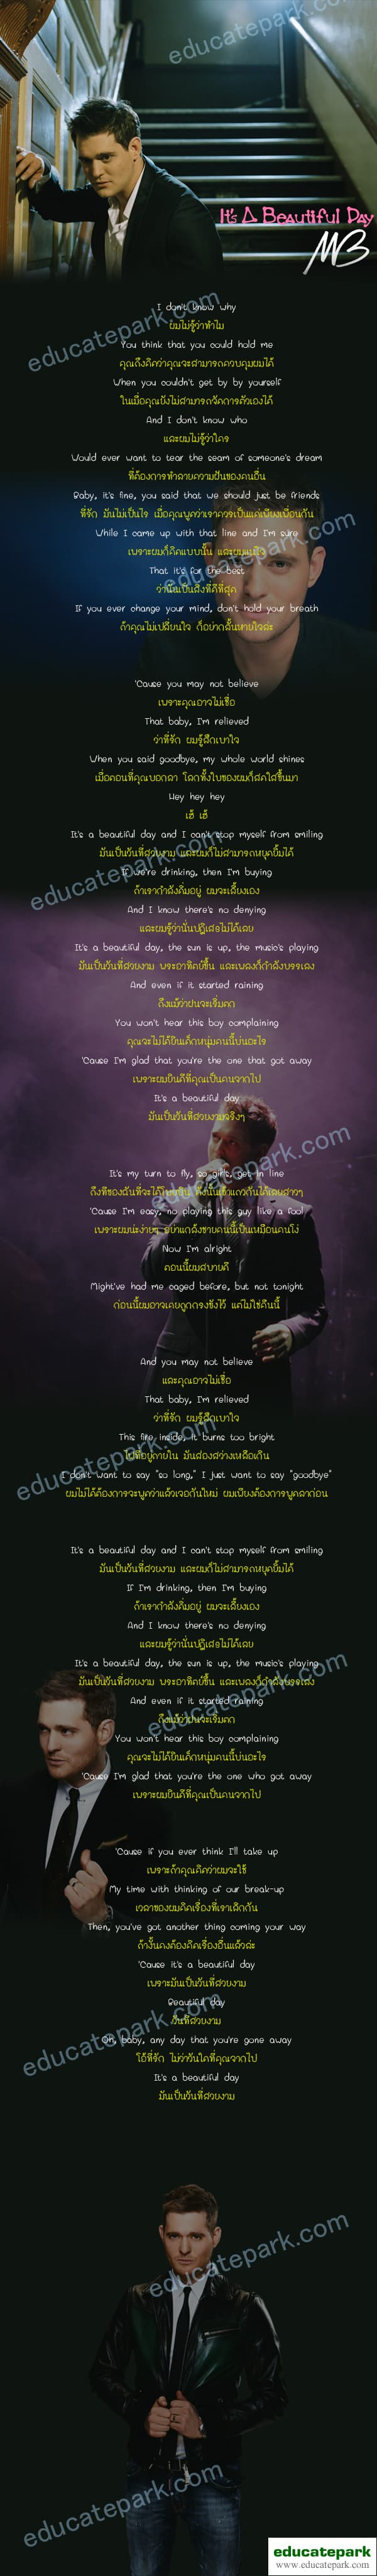 แปลเพลง It's a beautiful day - Michael Buble